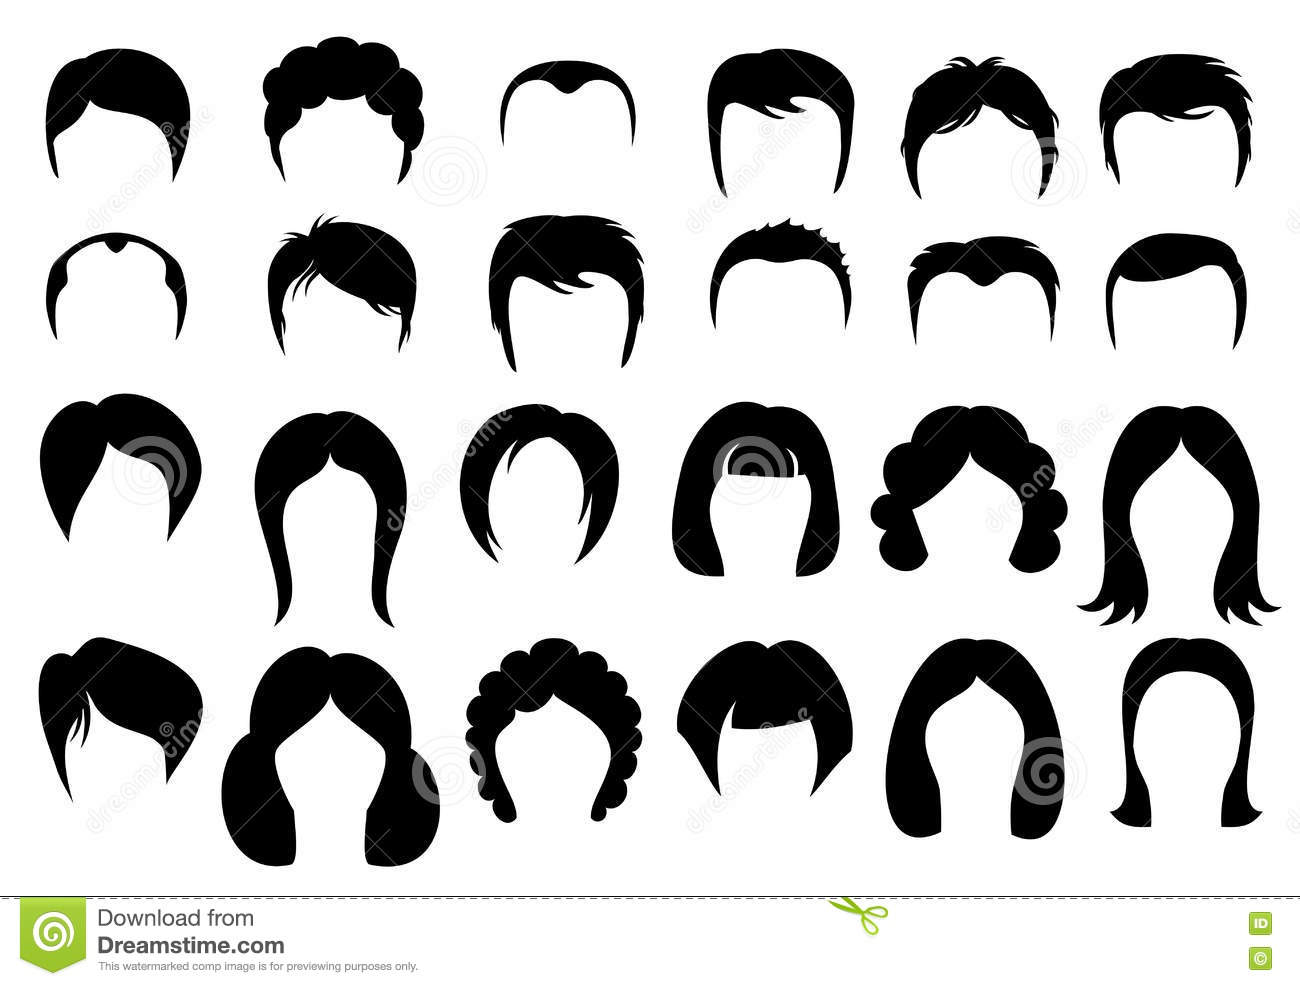 Hairstyle Vector: Female And Male Hair Vector Hairstyle Silhouette Icons